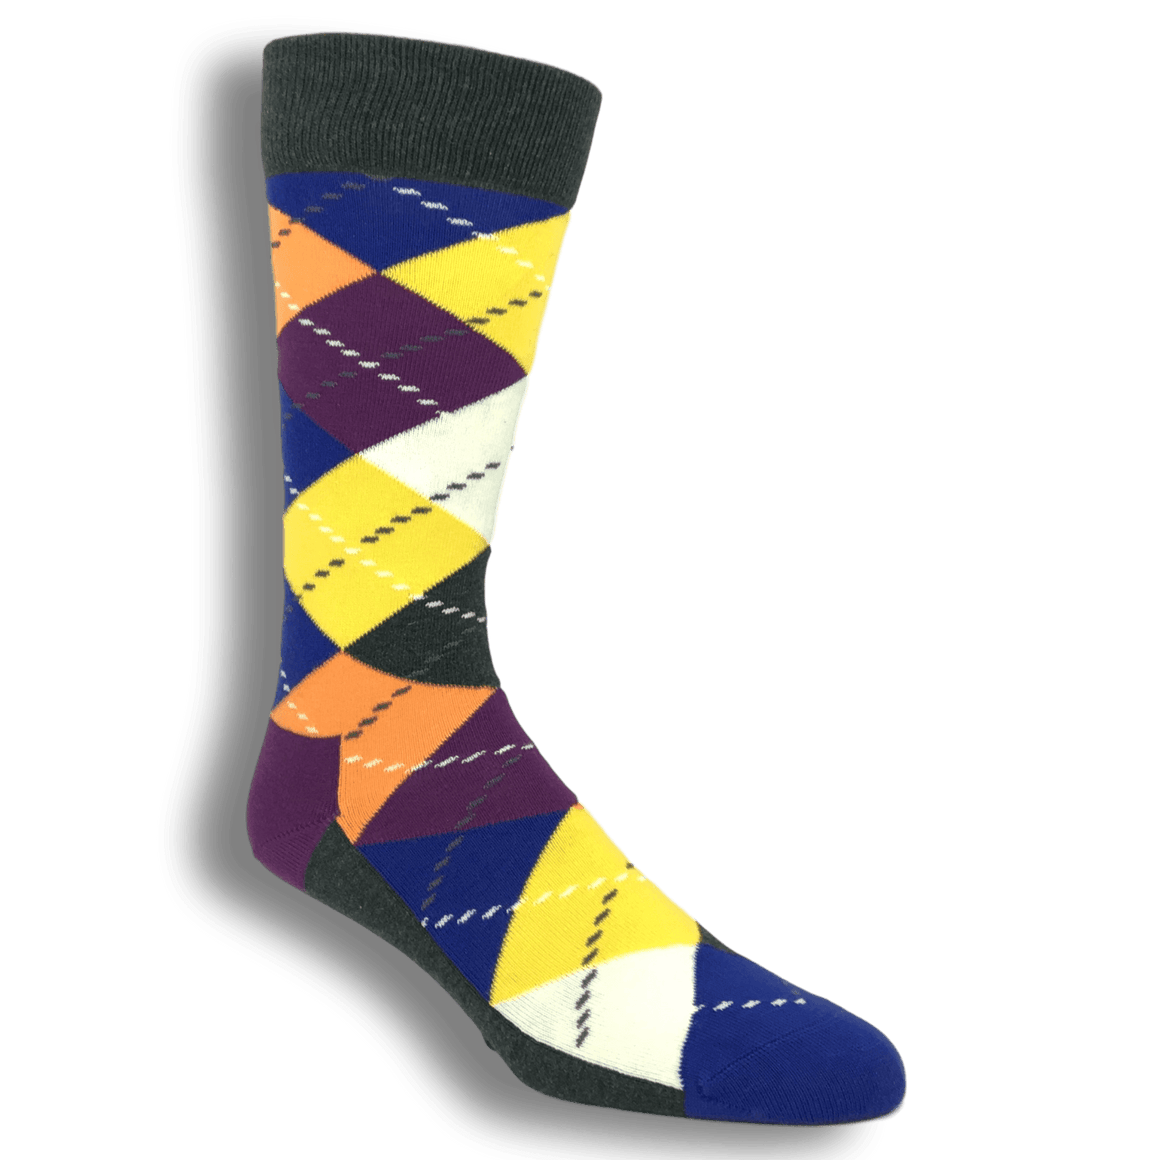 Socks - Grey, Yellow, And Purple Argyle Socks By Happy Socks